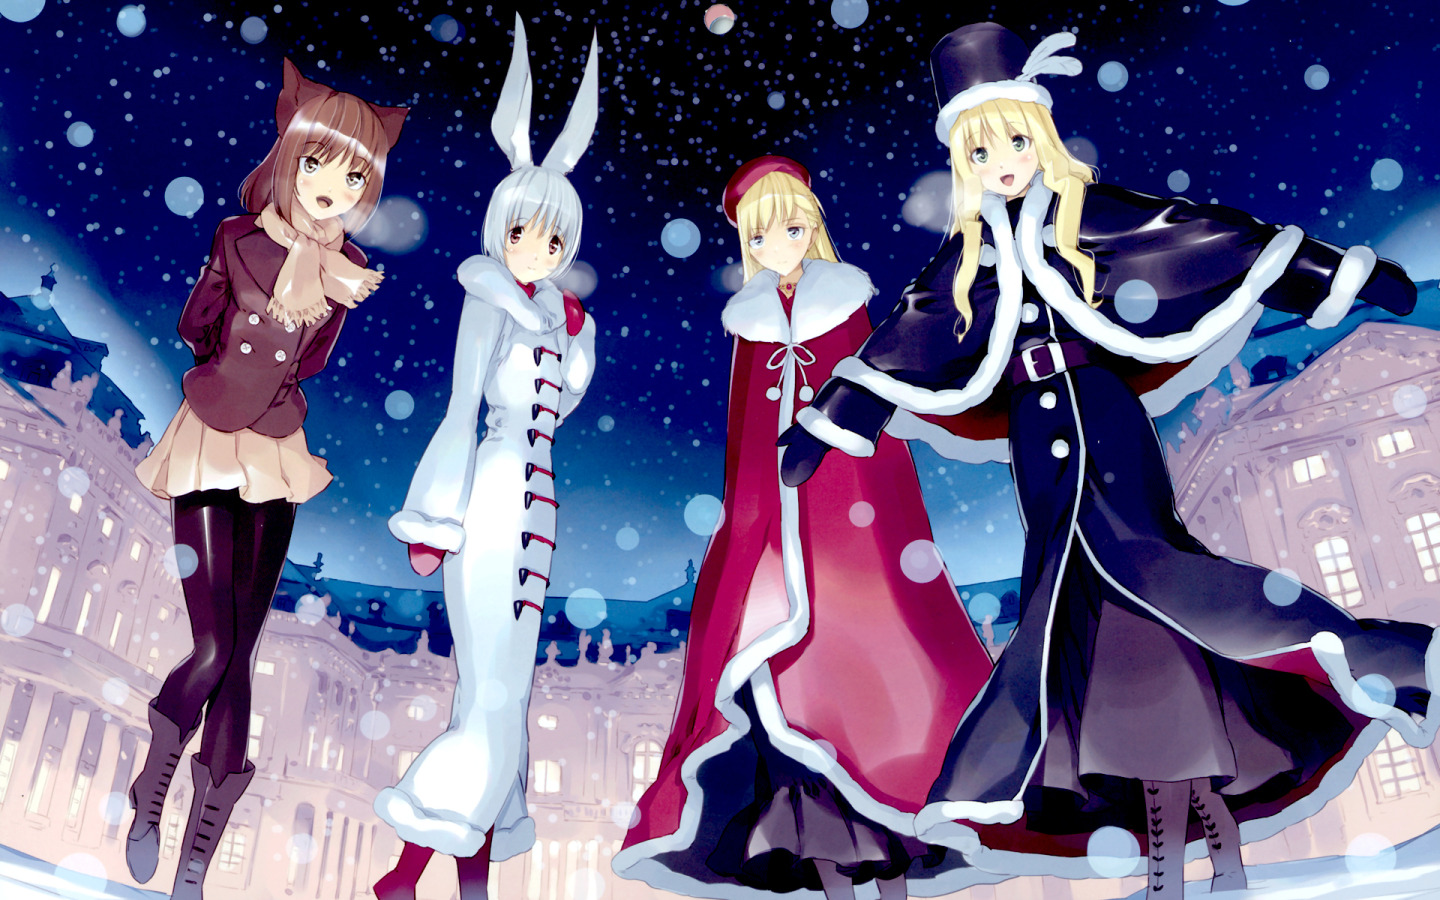 Anime Winter Wallpapers